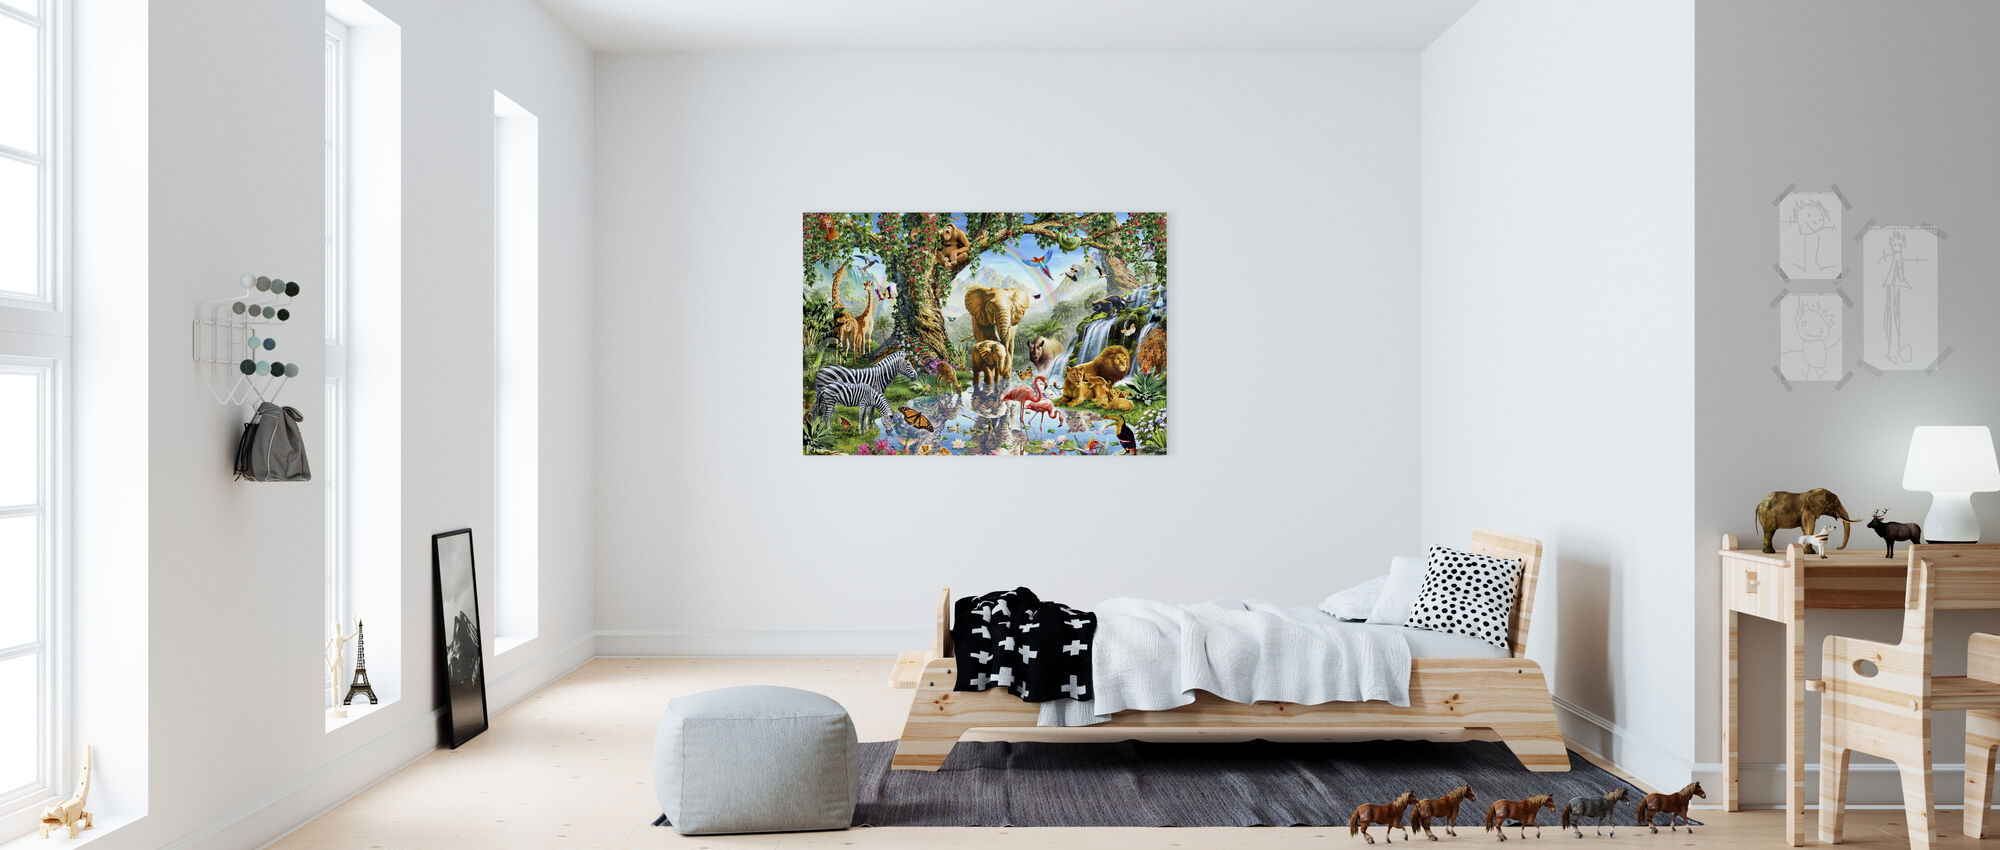 Jungle Lake with wild Animals - Canvas print - Kids Room